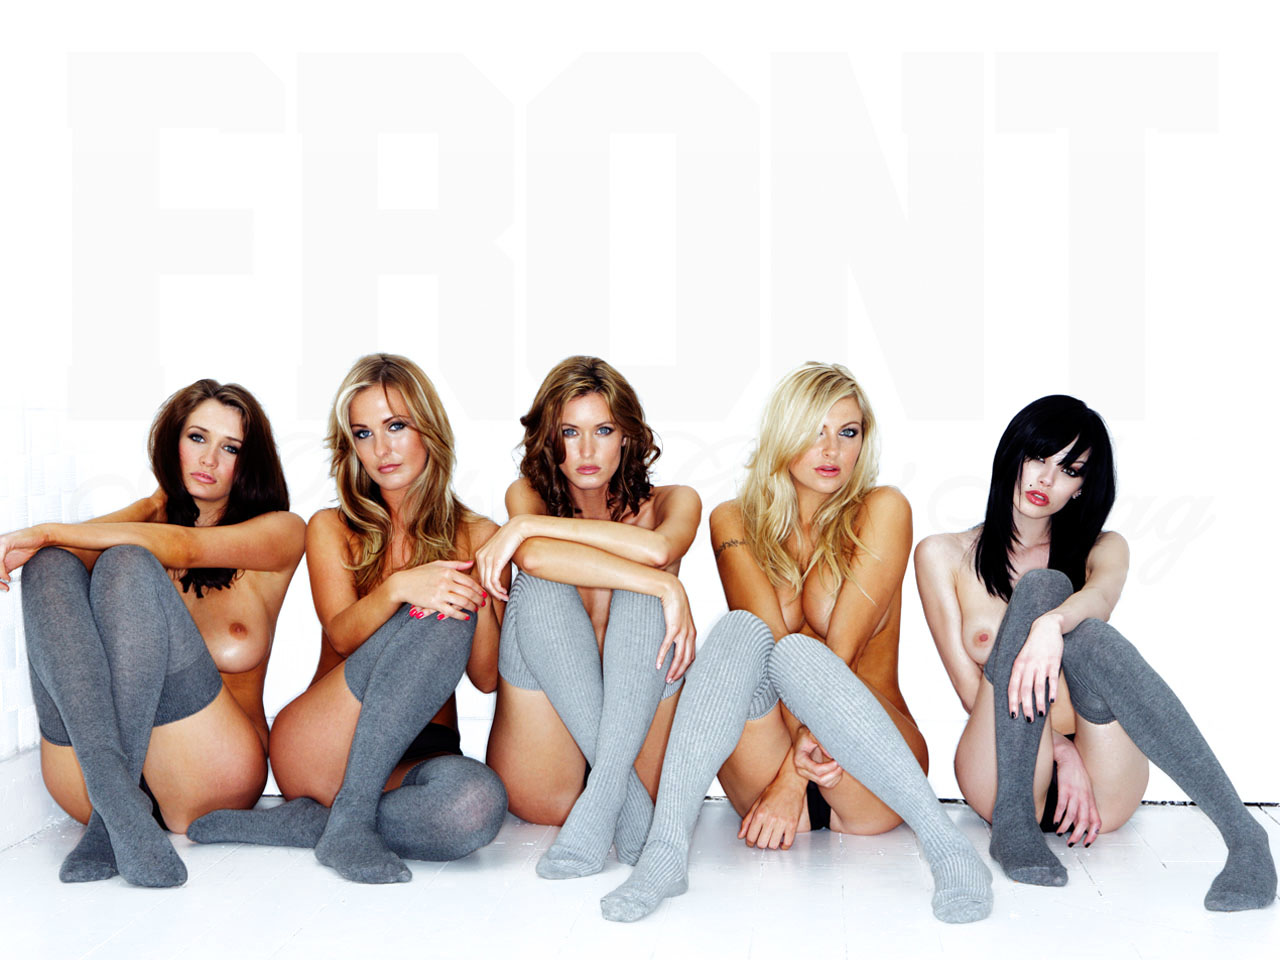 naked-girls-in-group-mix-vol3-28